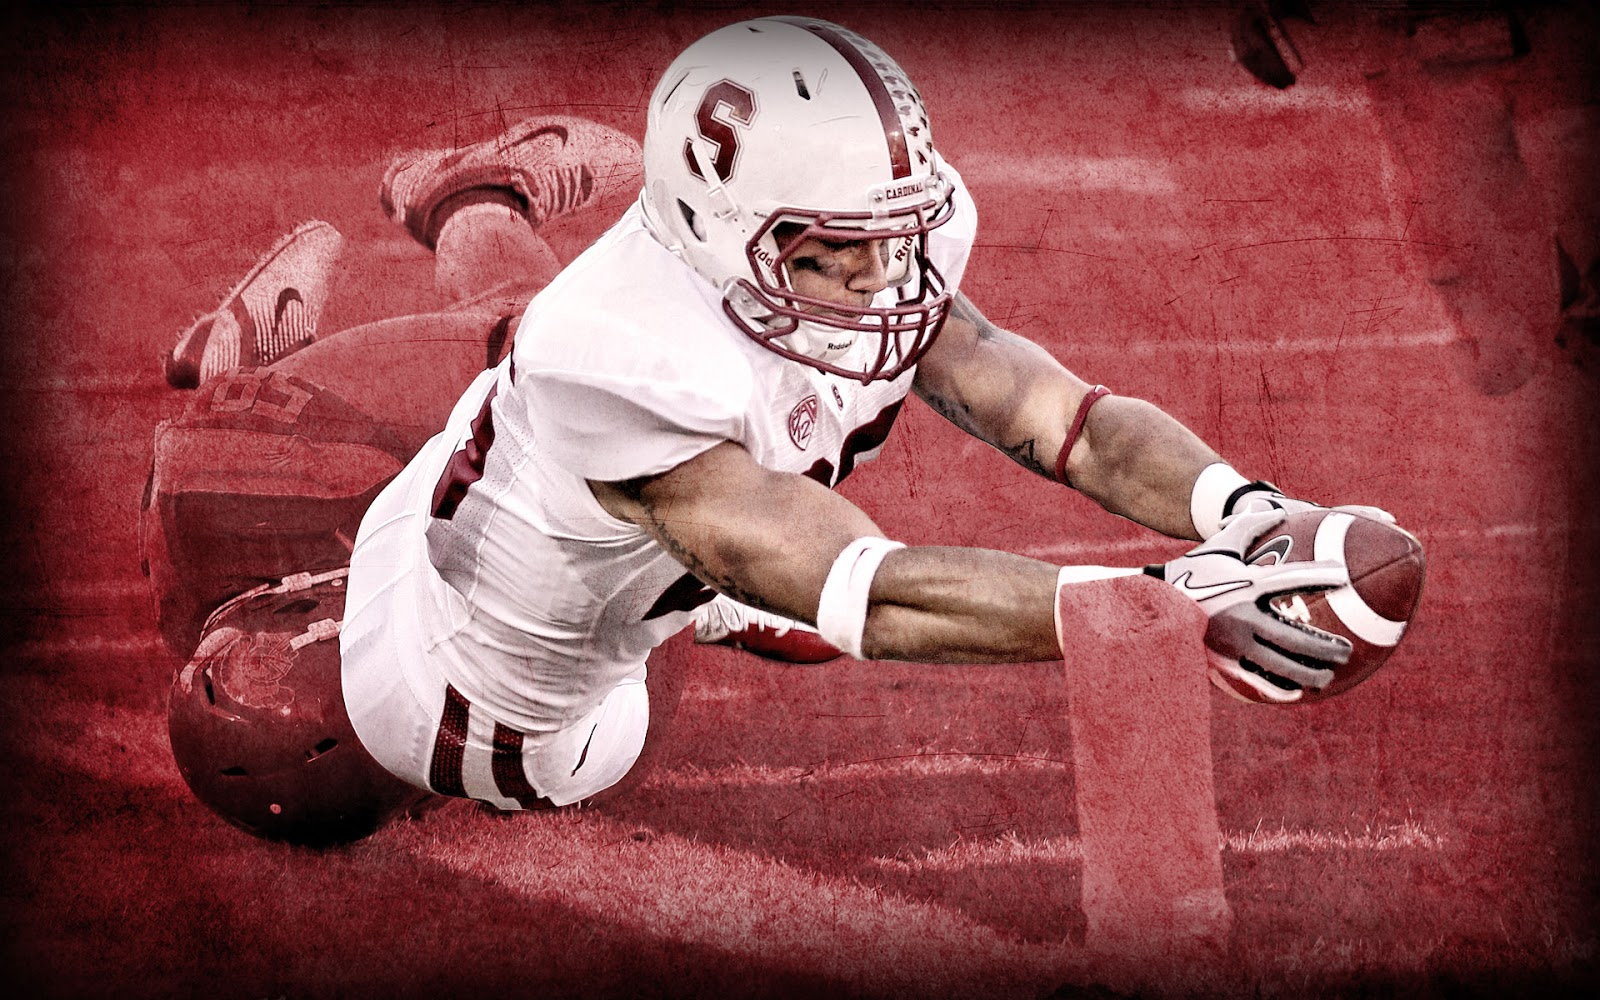 Tyler Gaffney - Stanford - relaywallpaper.blogspot.com